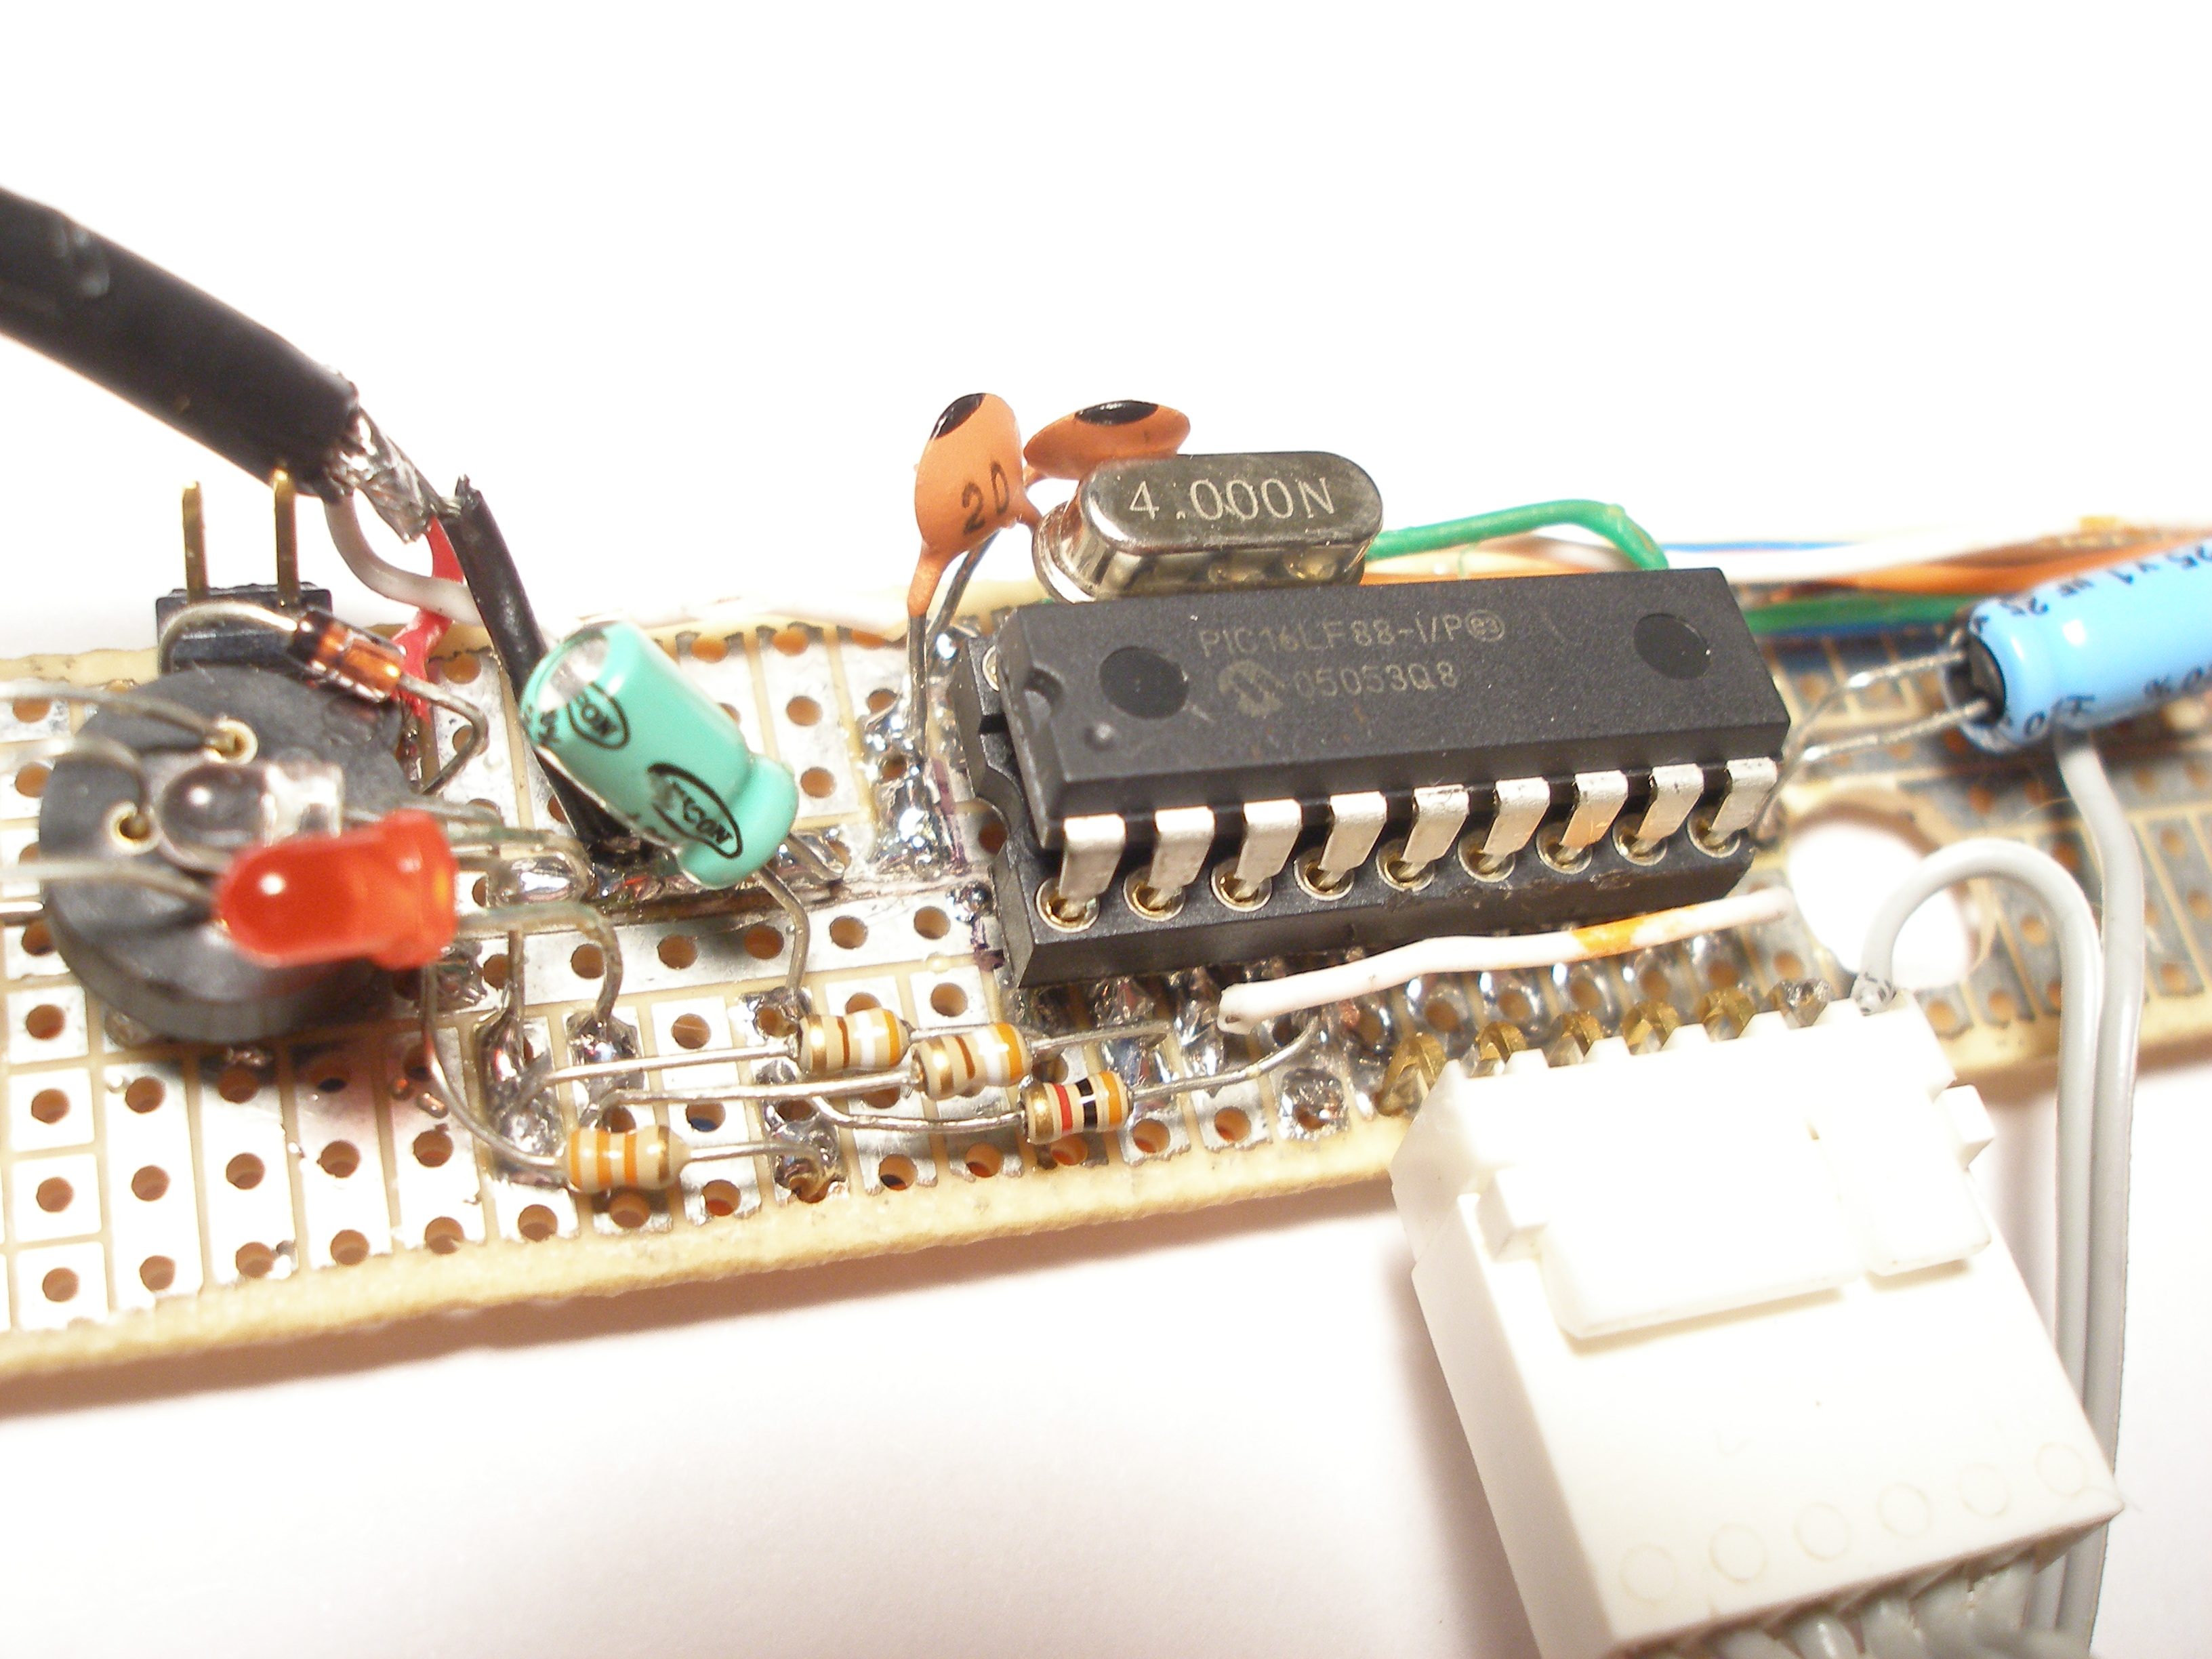 Build Replacement Lanc Circuit Boards For Underwater Video Housing 16f88 Electronics Forum Circuits Projects And Microcontrollers The Design Direction Would Be A With Software Taken From Existing F84 Project Ported To F88 During Port I Have Disable